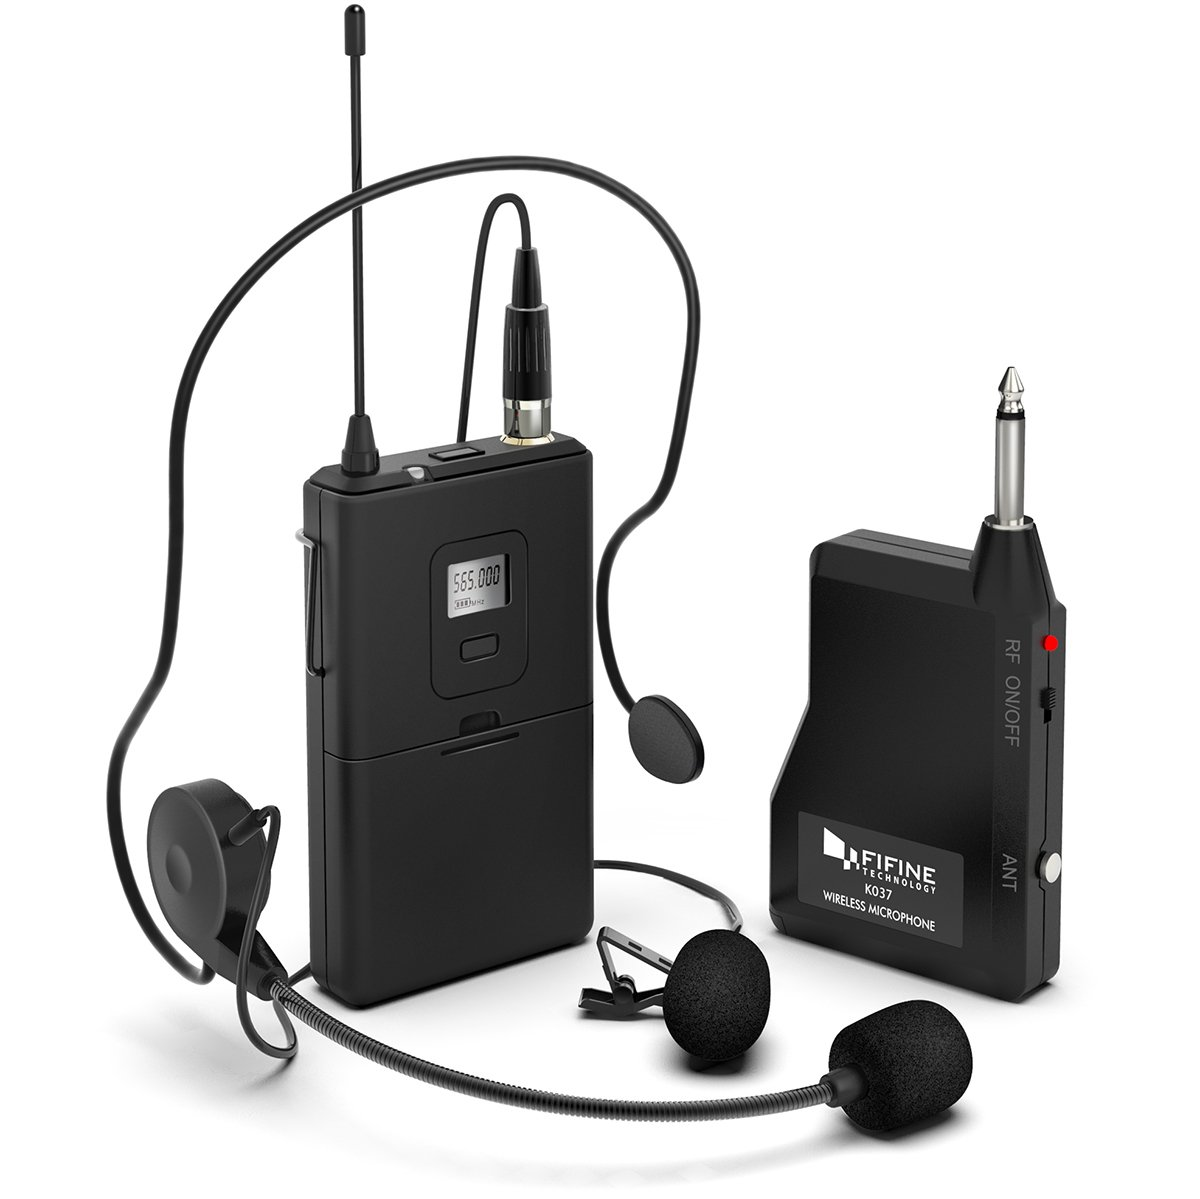 FIFINE Wireless Microphone System, Wireless Microphone set with Headset and  Lavalier Lapel Mics, Beltpack Transmitter and Receiver,Ideal for Teaching,